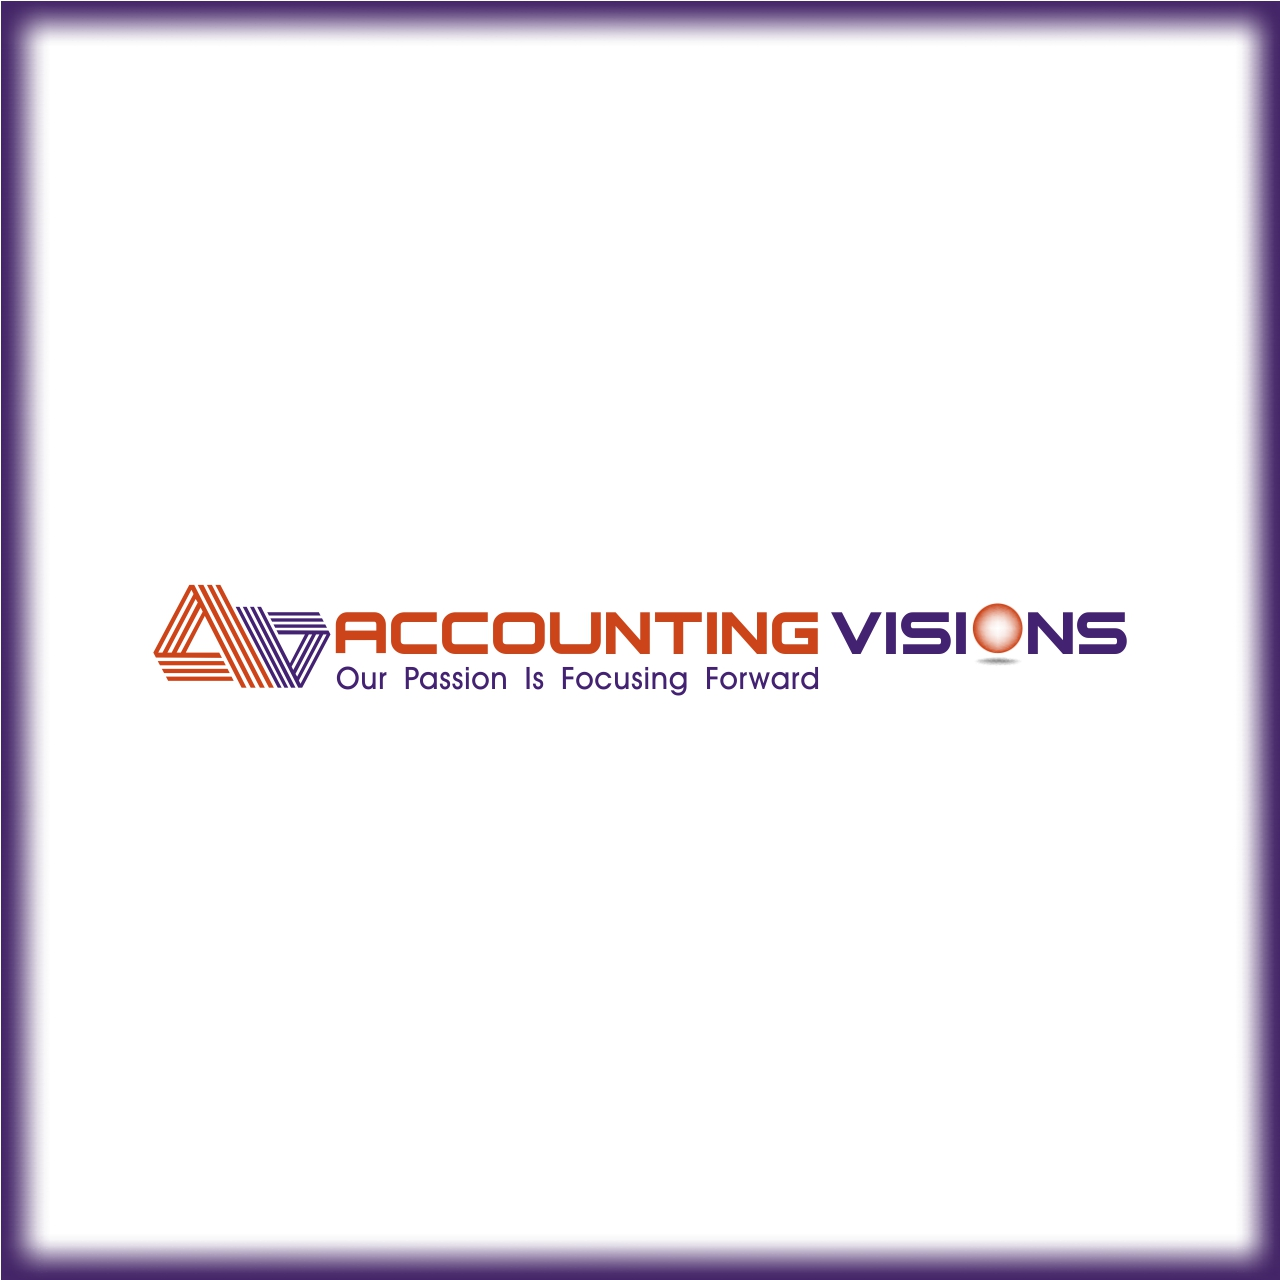 Logo Design by martinz - Entry No. 45 in the Logo Design Contest Accounting Visions.